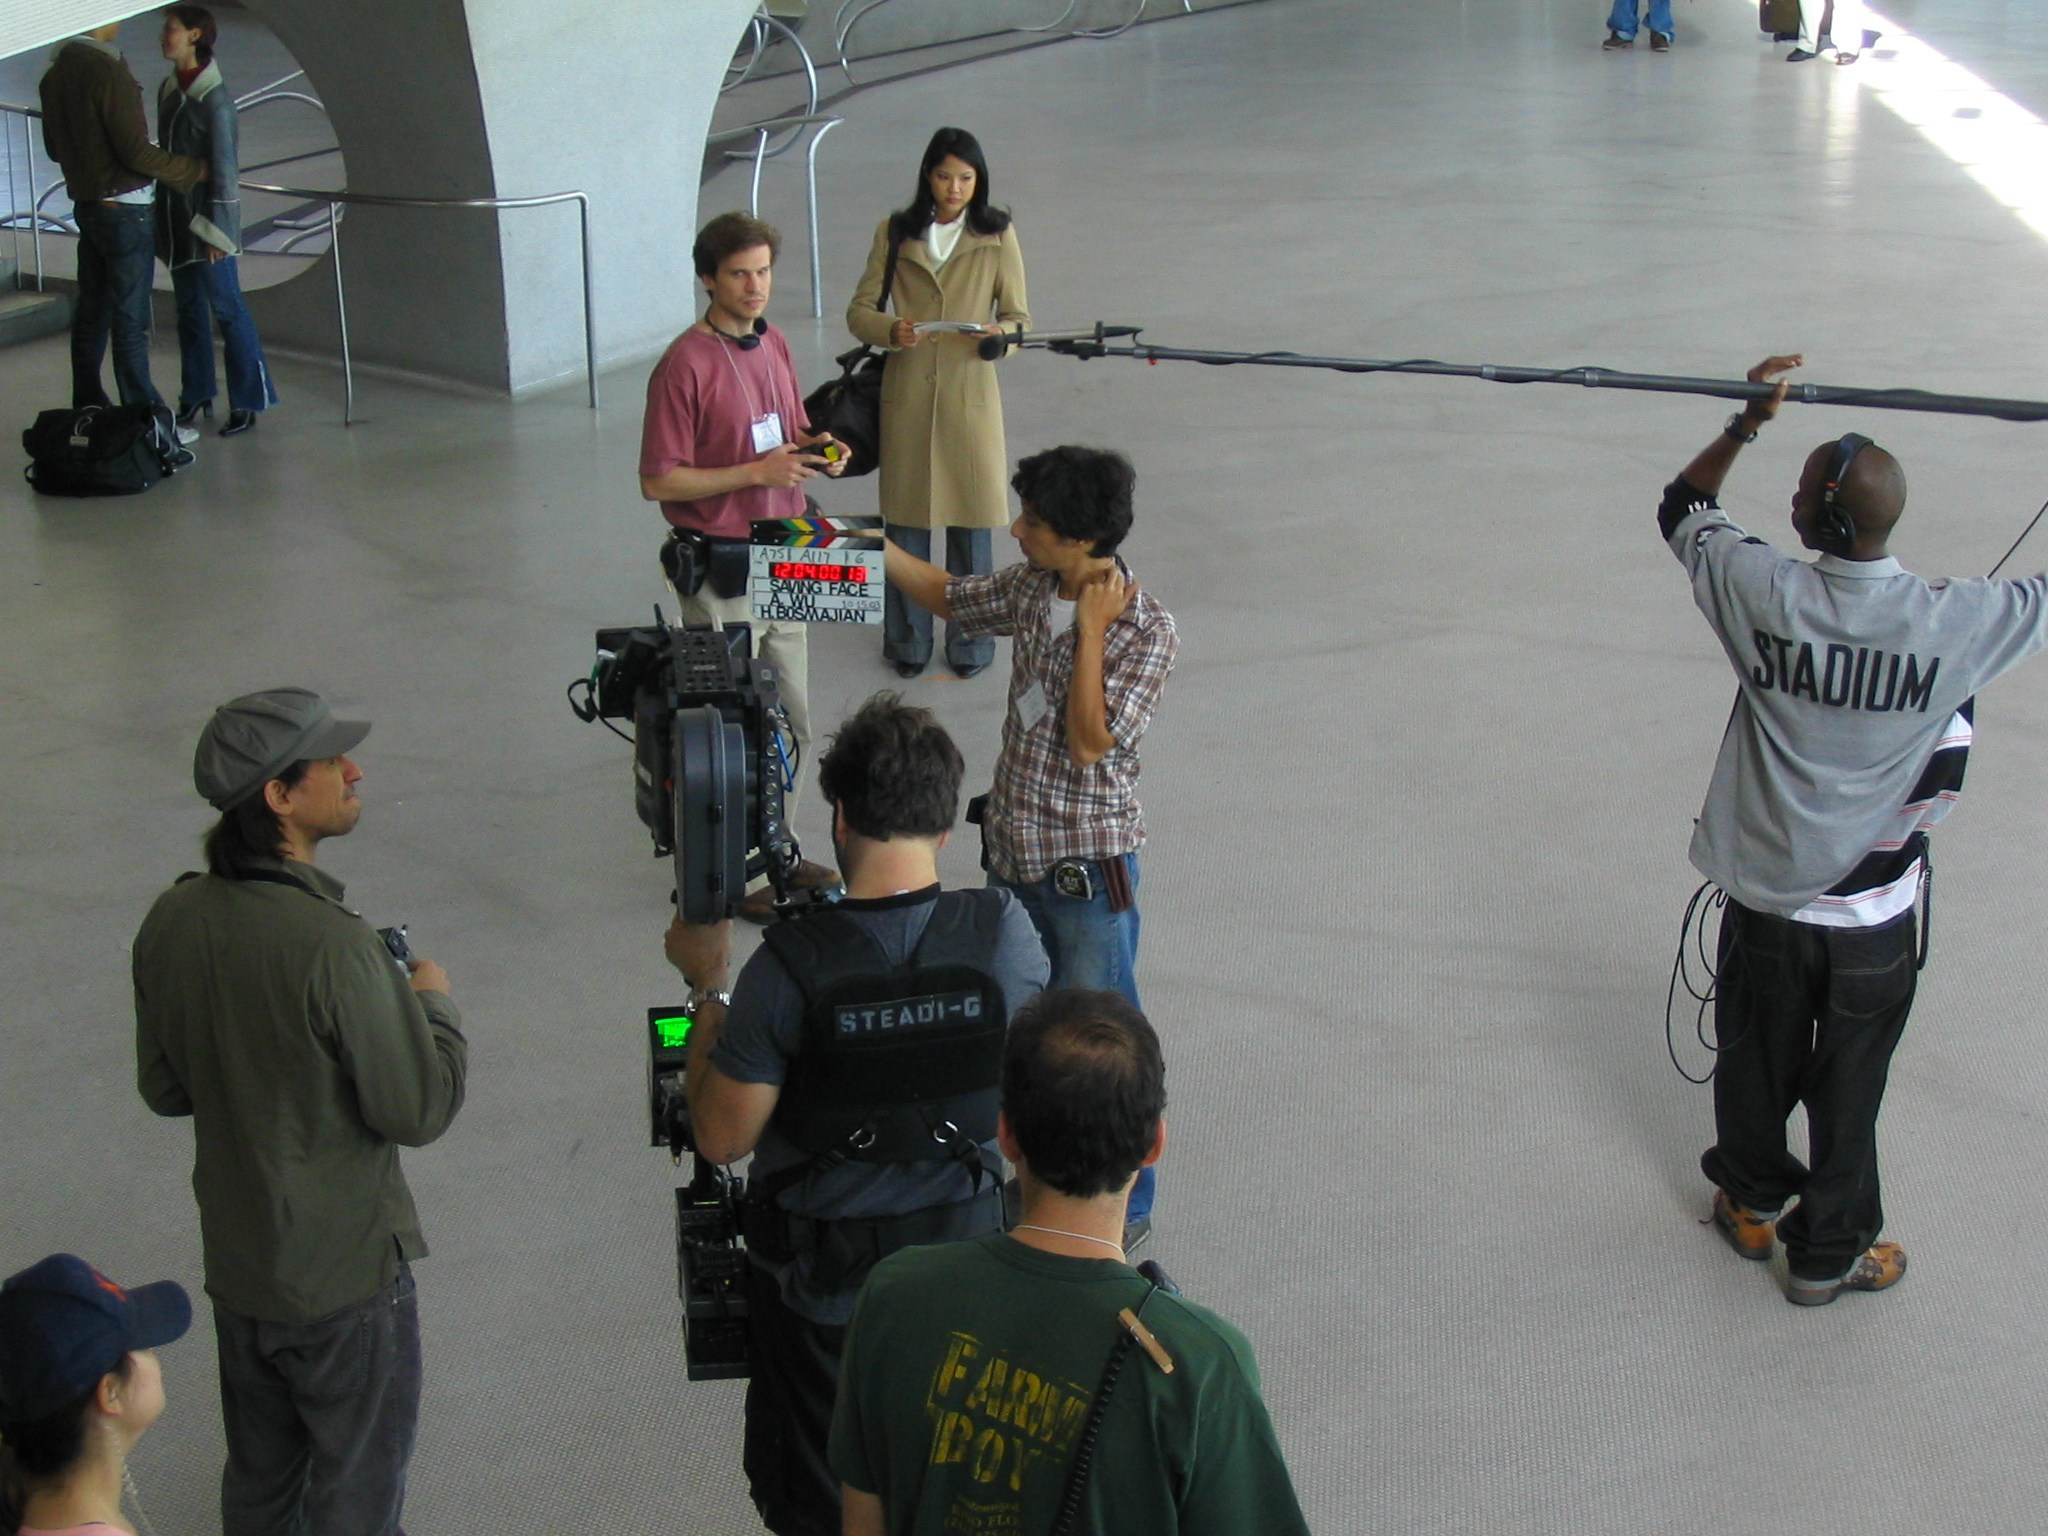 Saving Face Airport JFK BTS.jpg